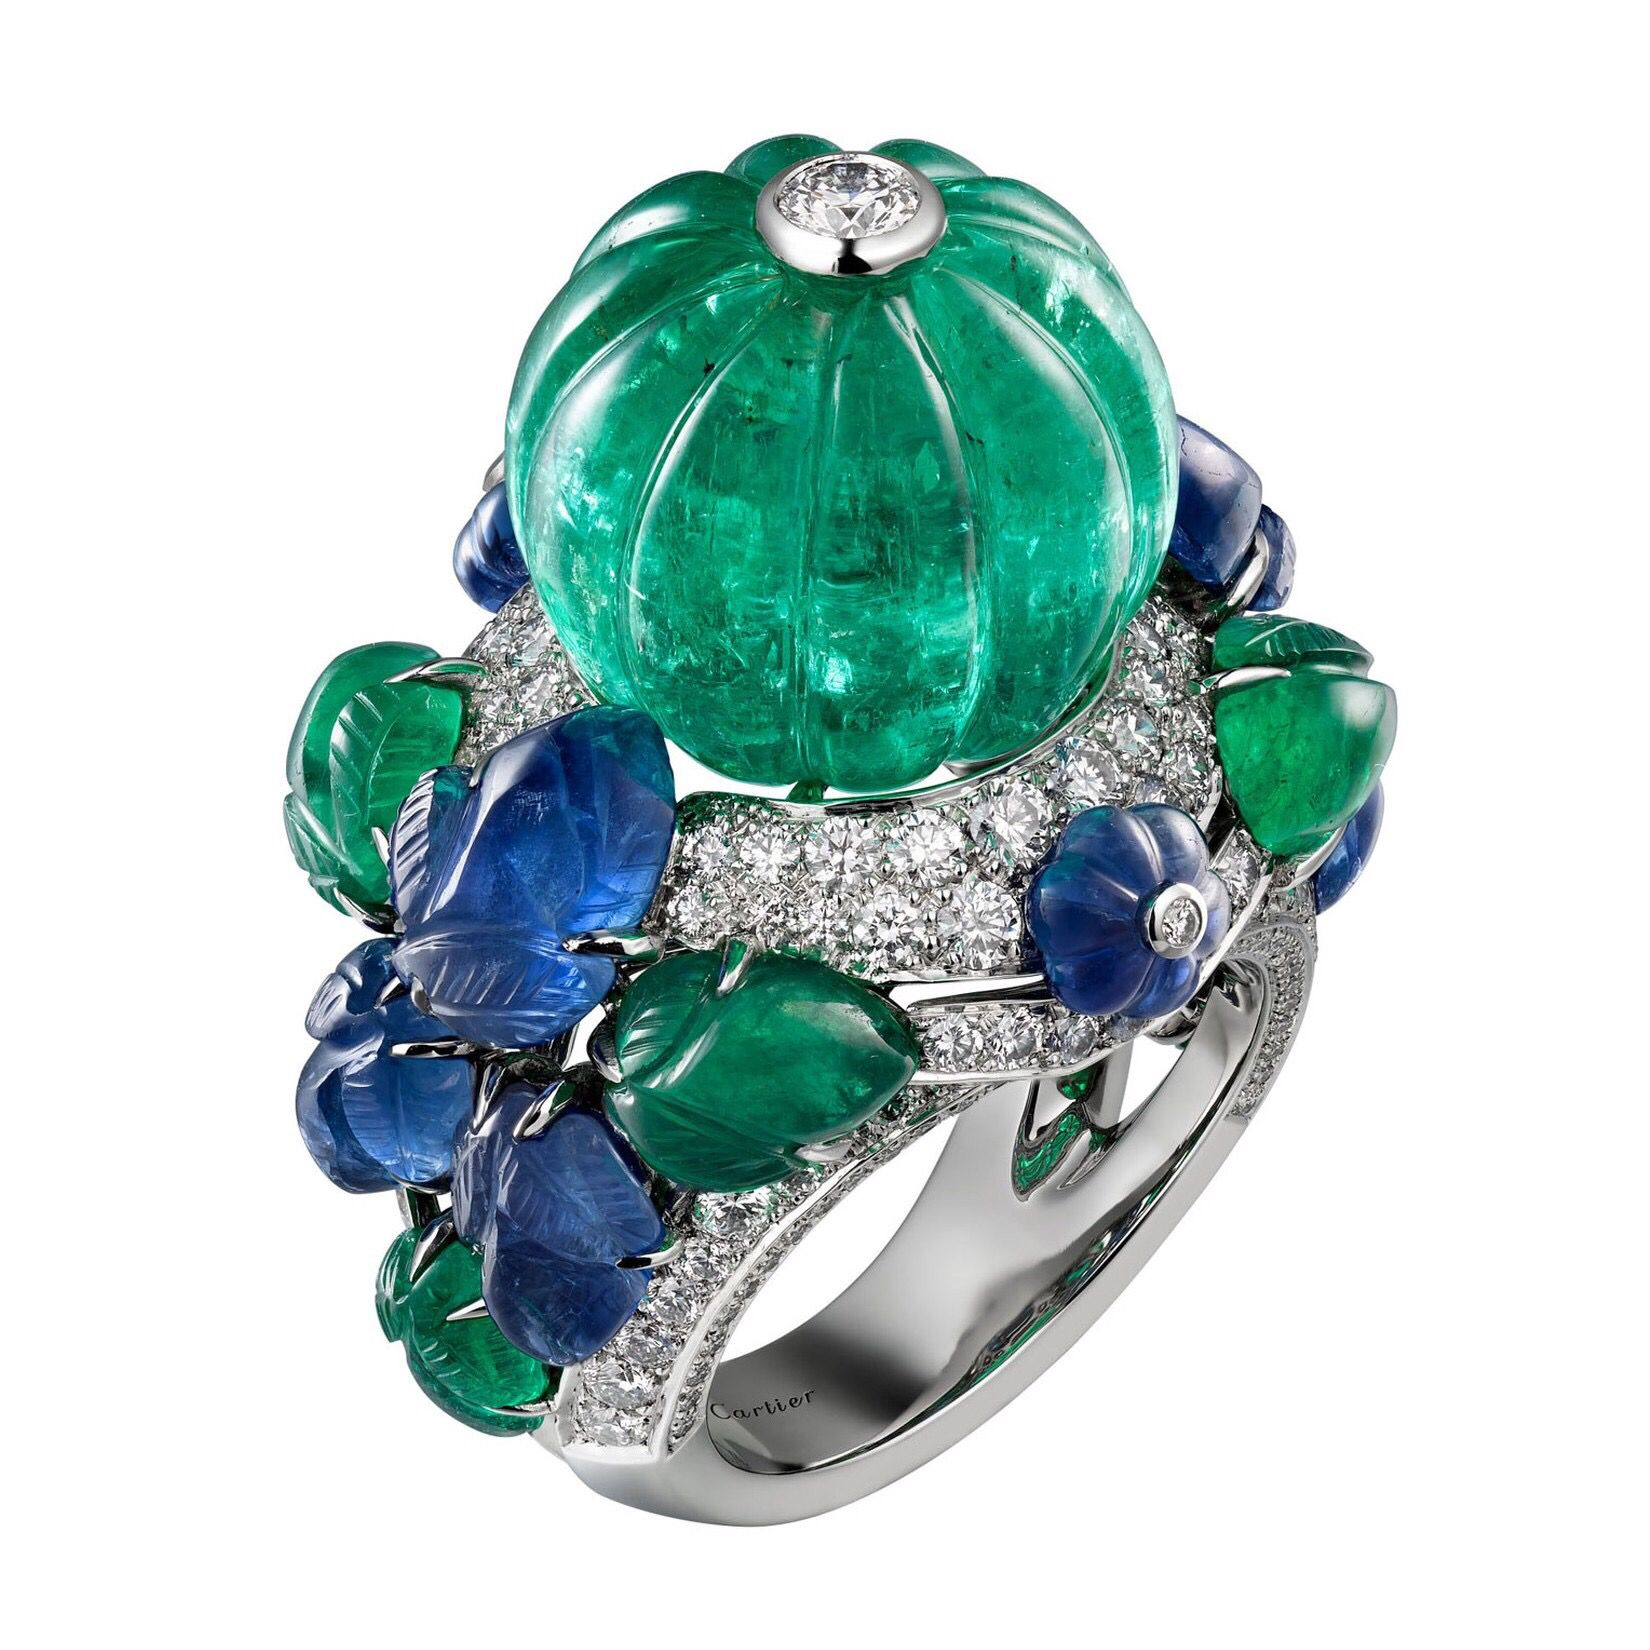 highlights sothebys new york sale jewels magnificent and diamond ring necklace emerald from cartier december